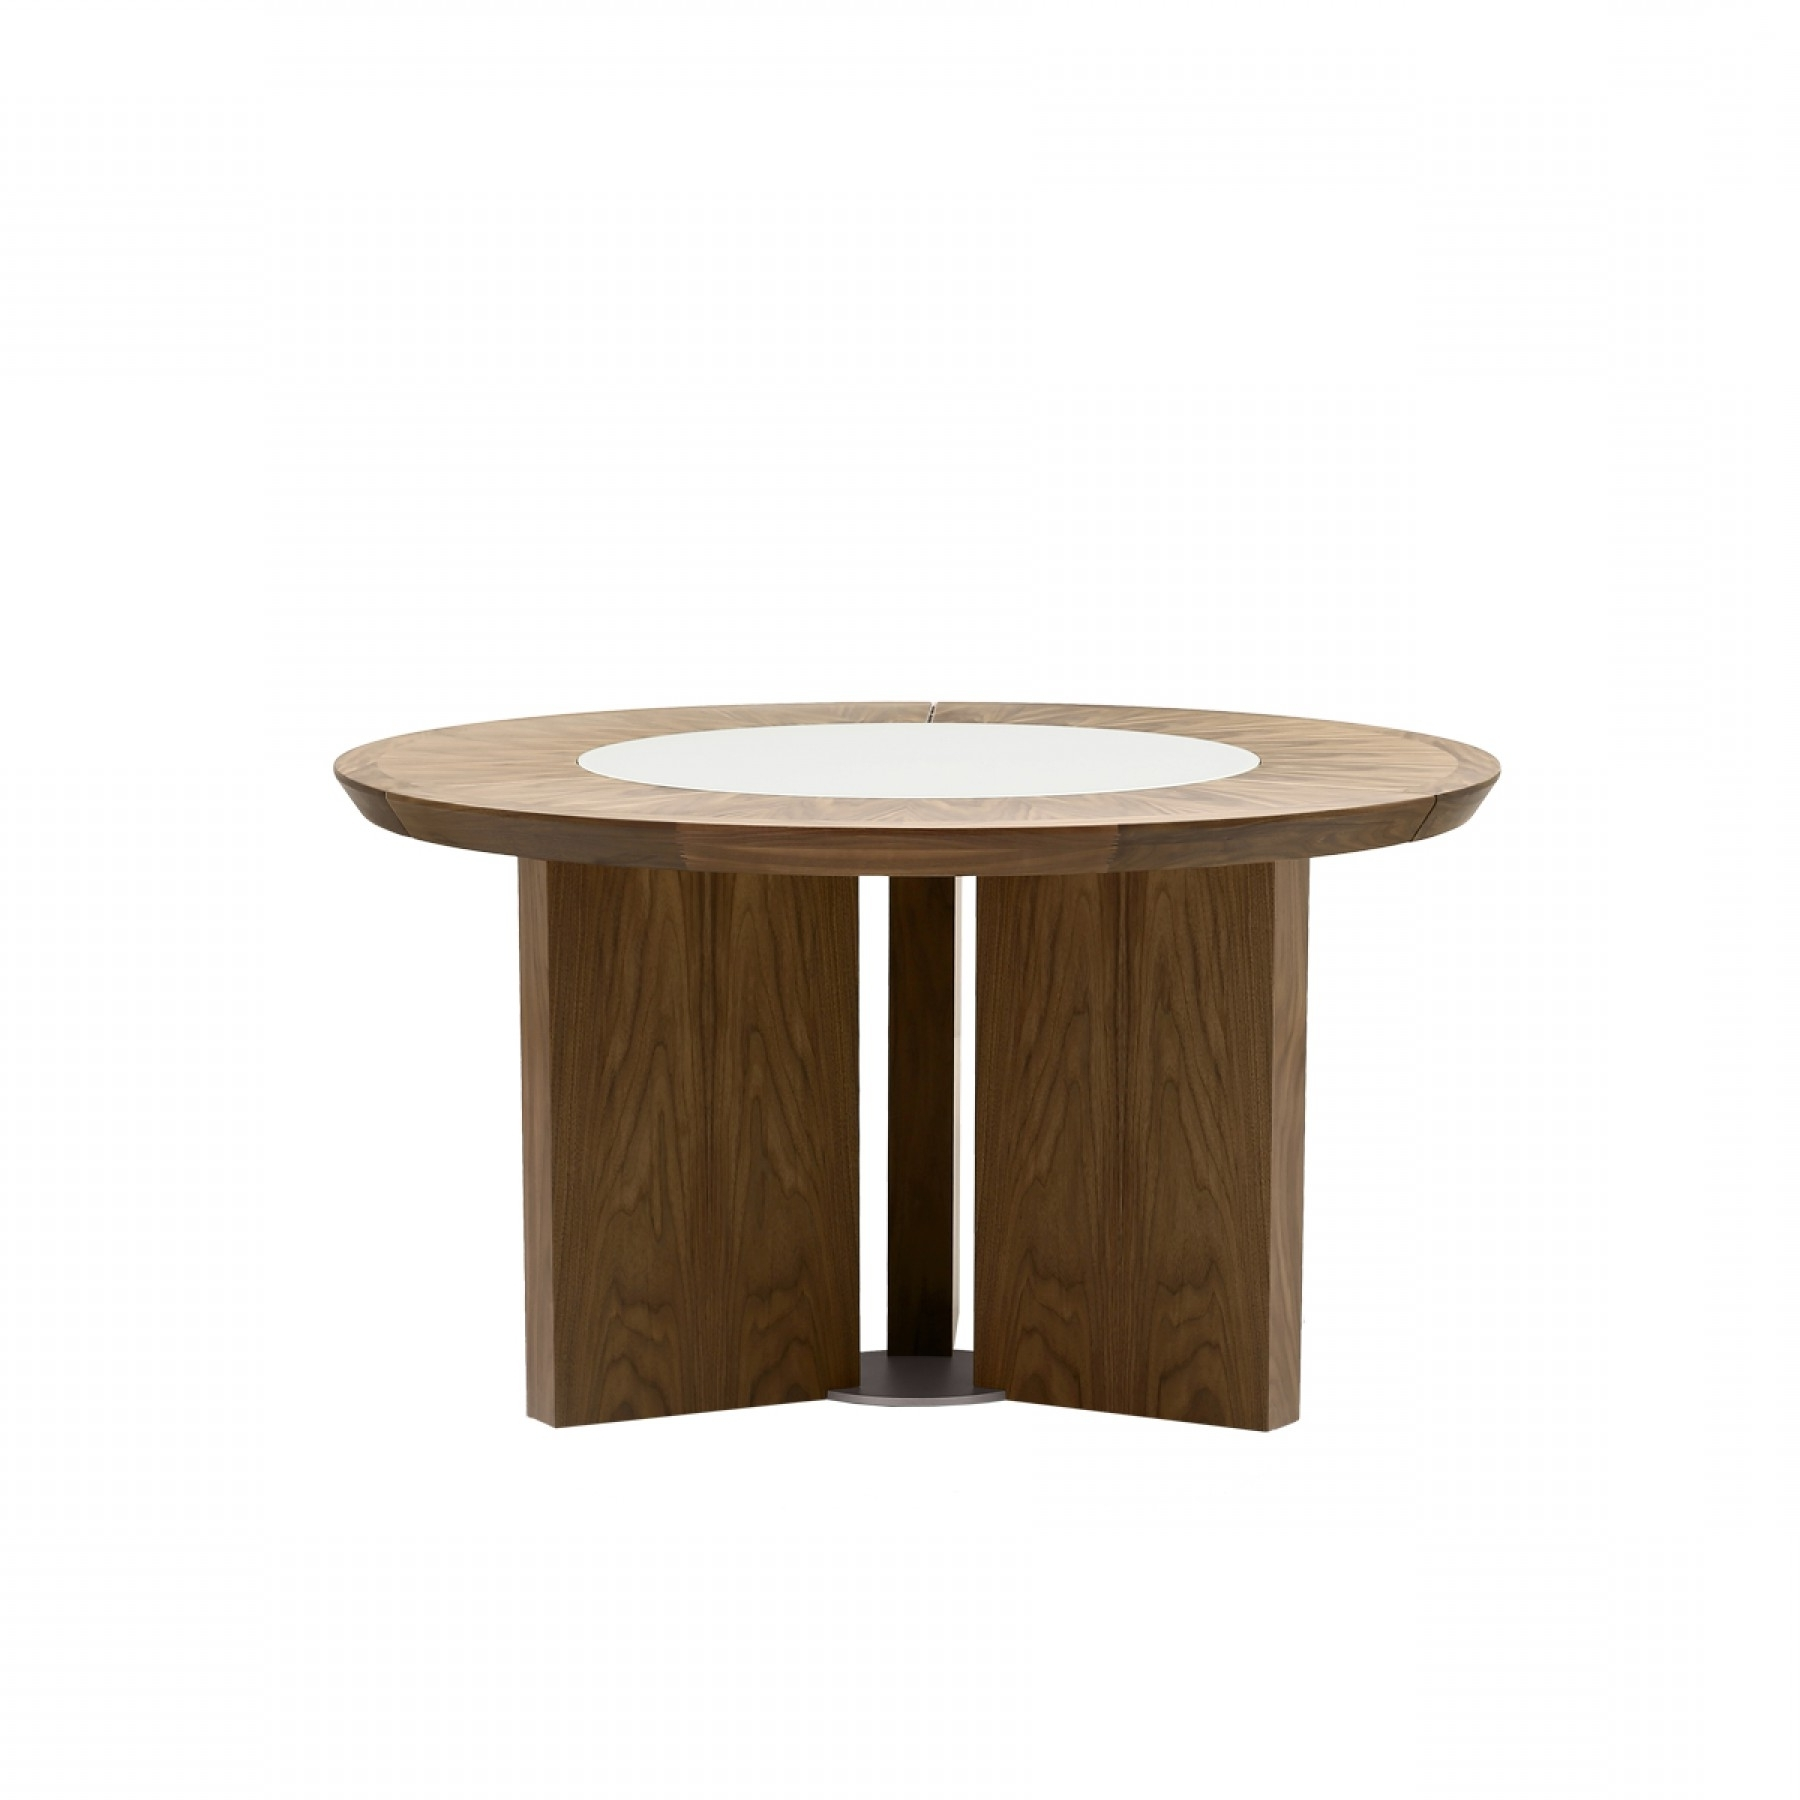 Famous Perth Dining Tables Within Midollo Walnut Round Dining Table – Beyond Furniture (View 16 of 25)